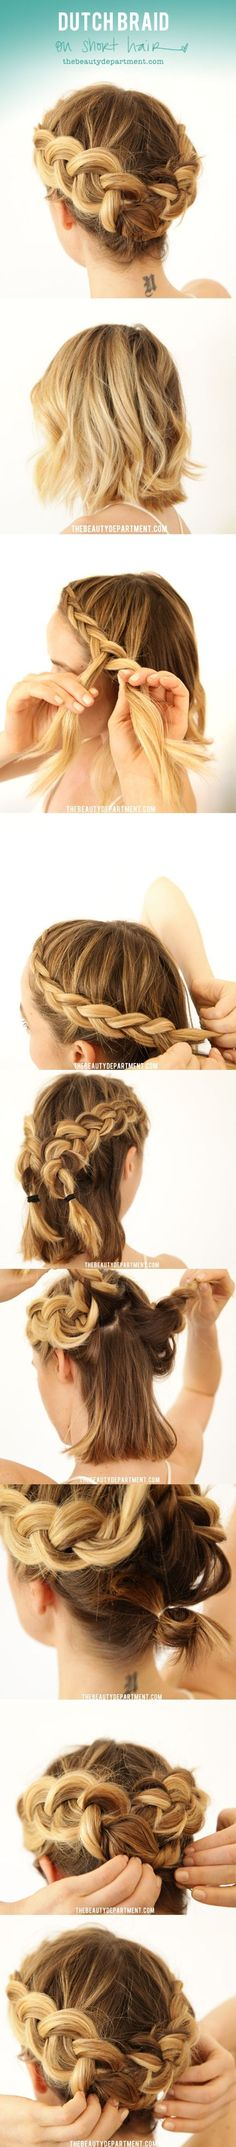 cool Dutch Braid On Short Hair - HairPush